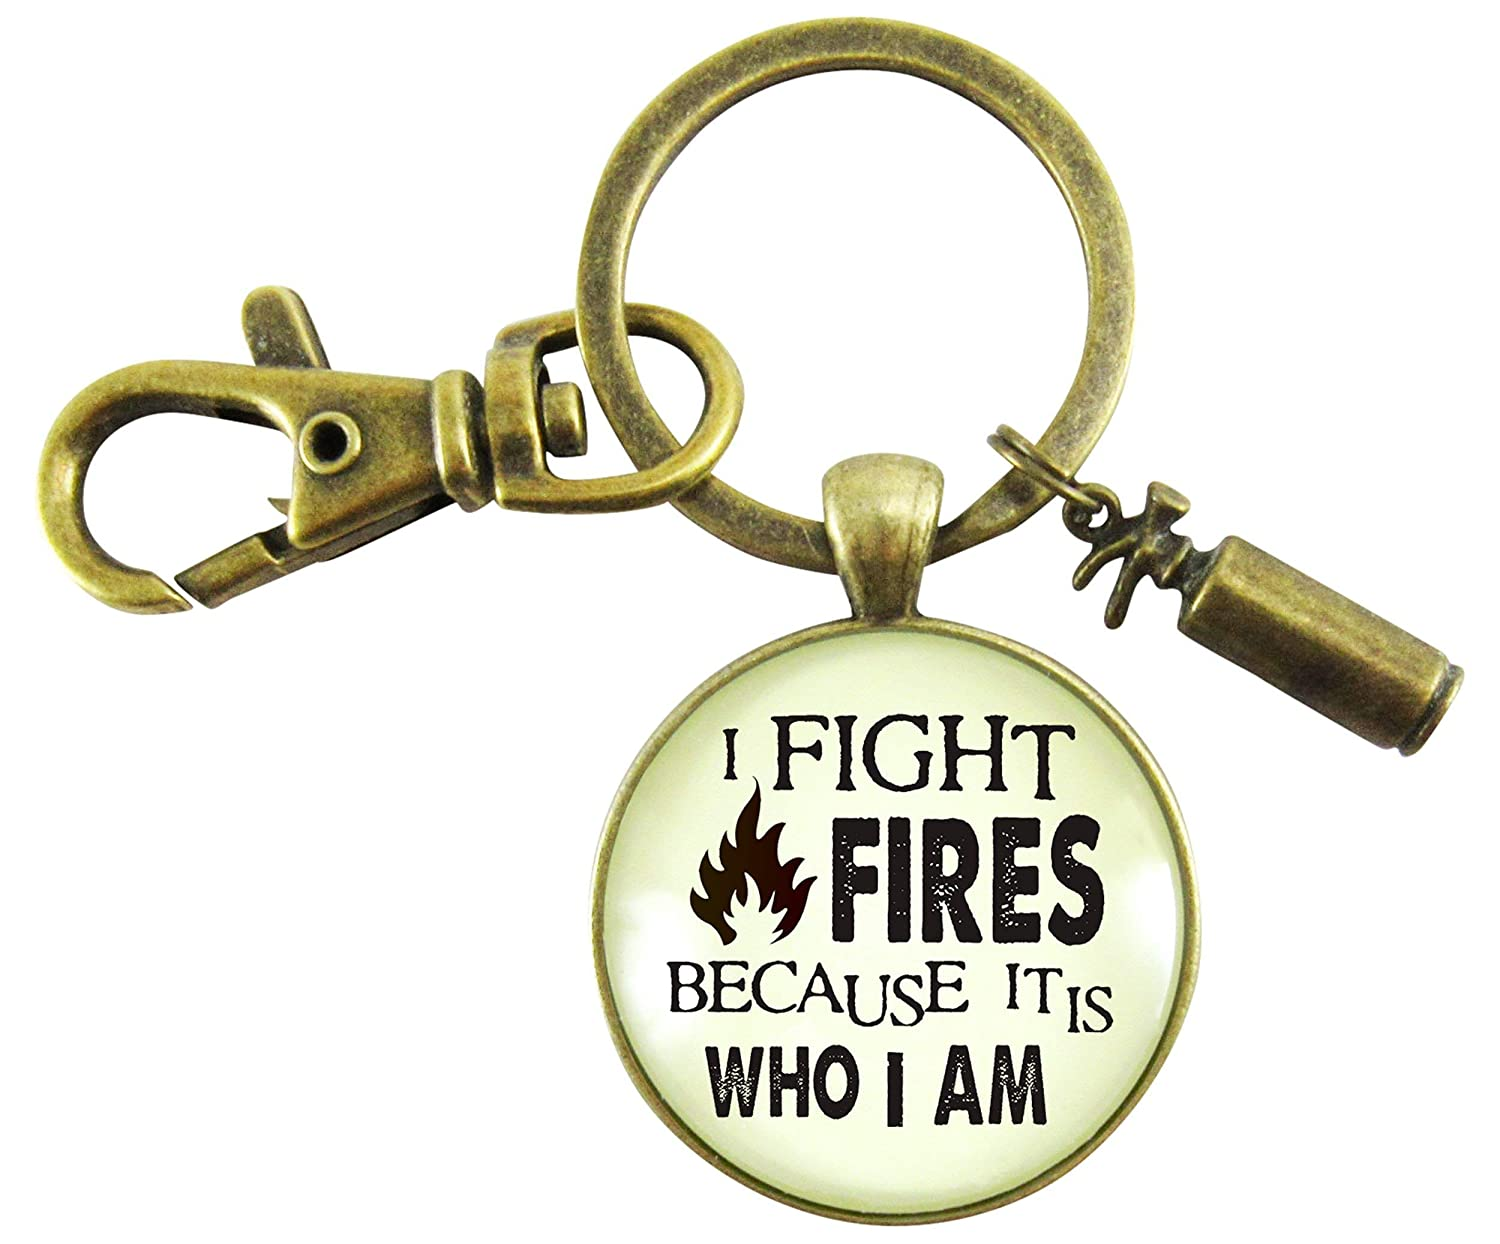 Firefighter Keychain I Fight Fires Because It Is Who I Am Appreciation Gift Jewelry Novelty Extinguisher Charm